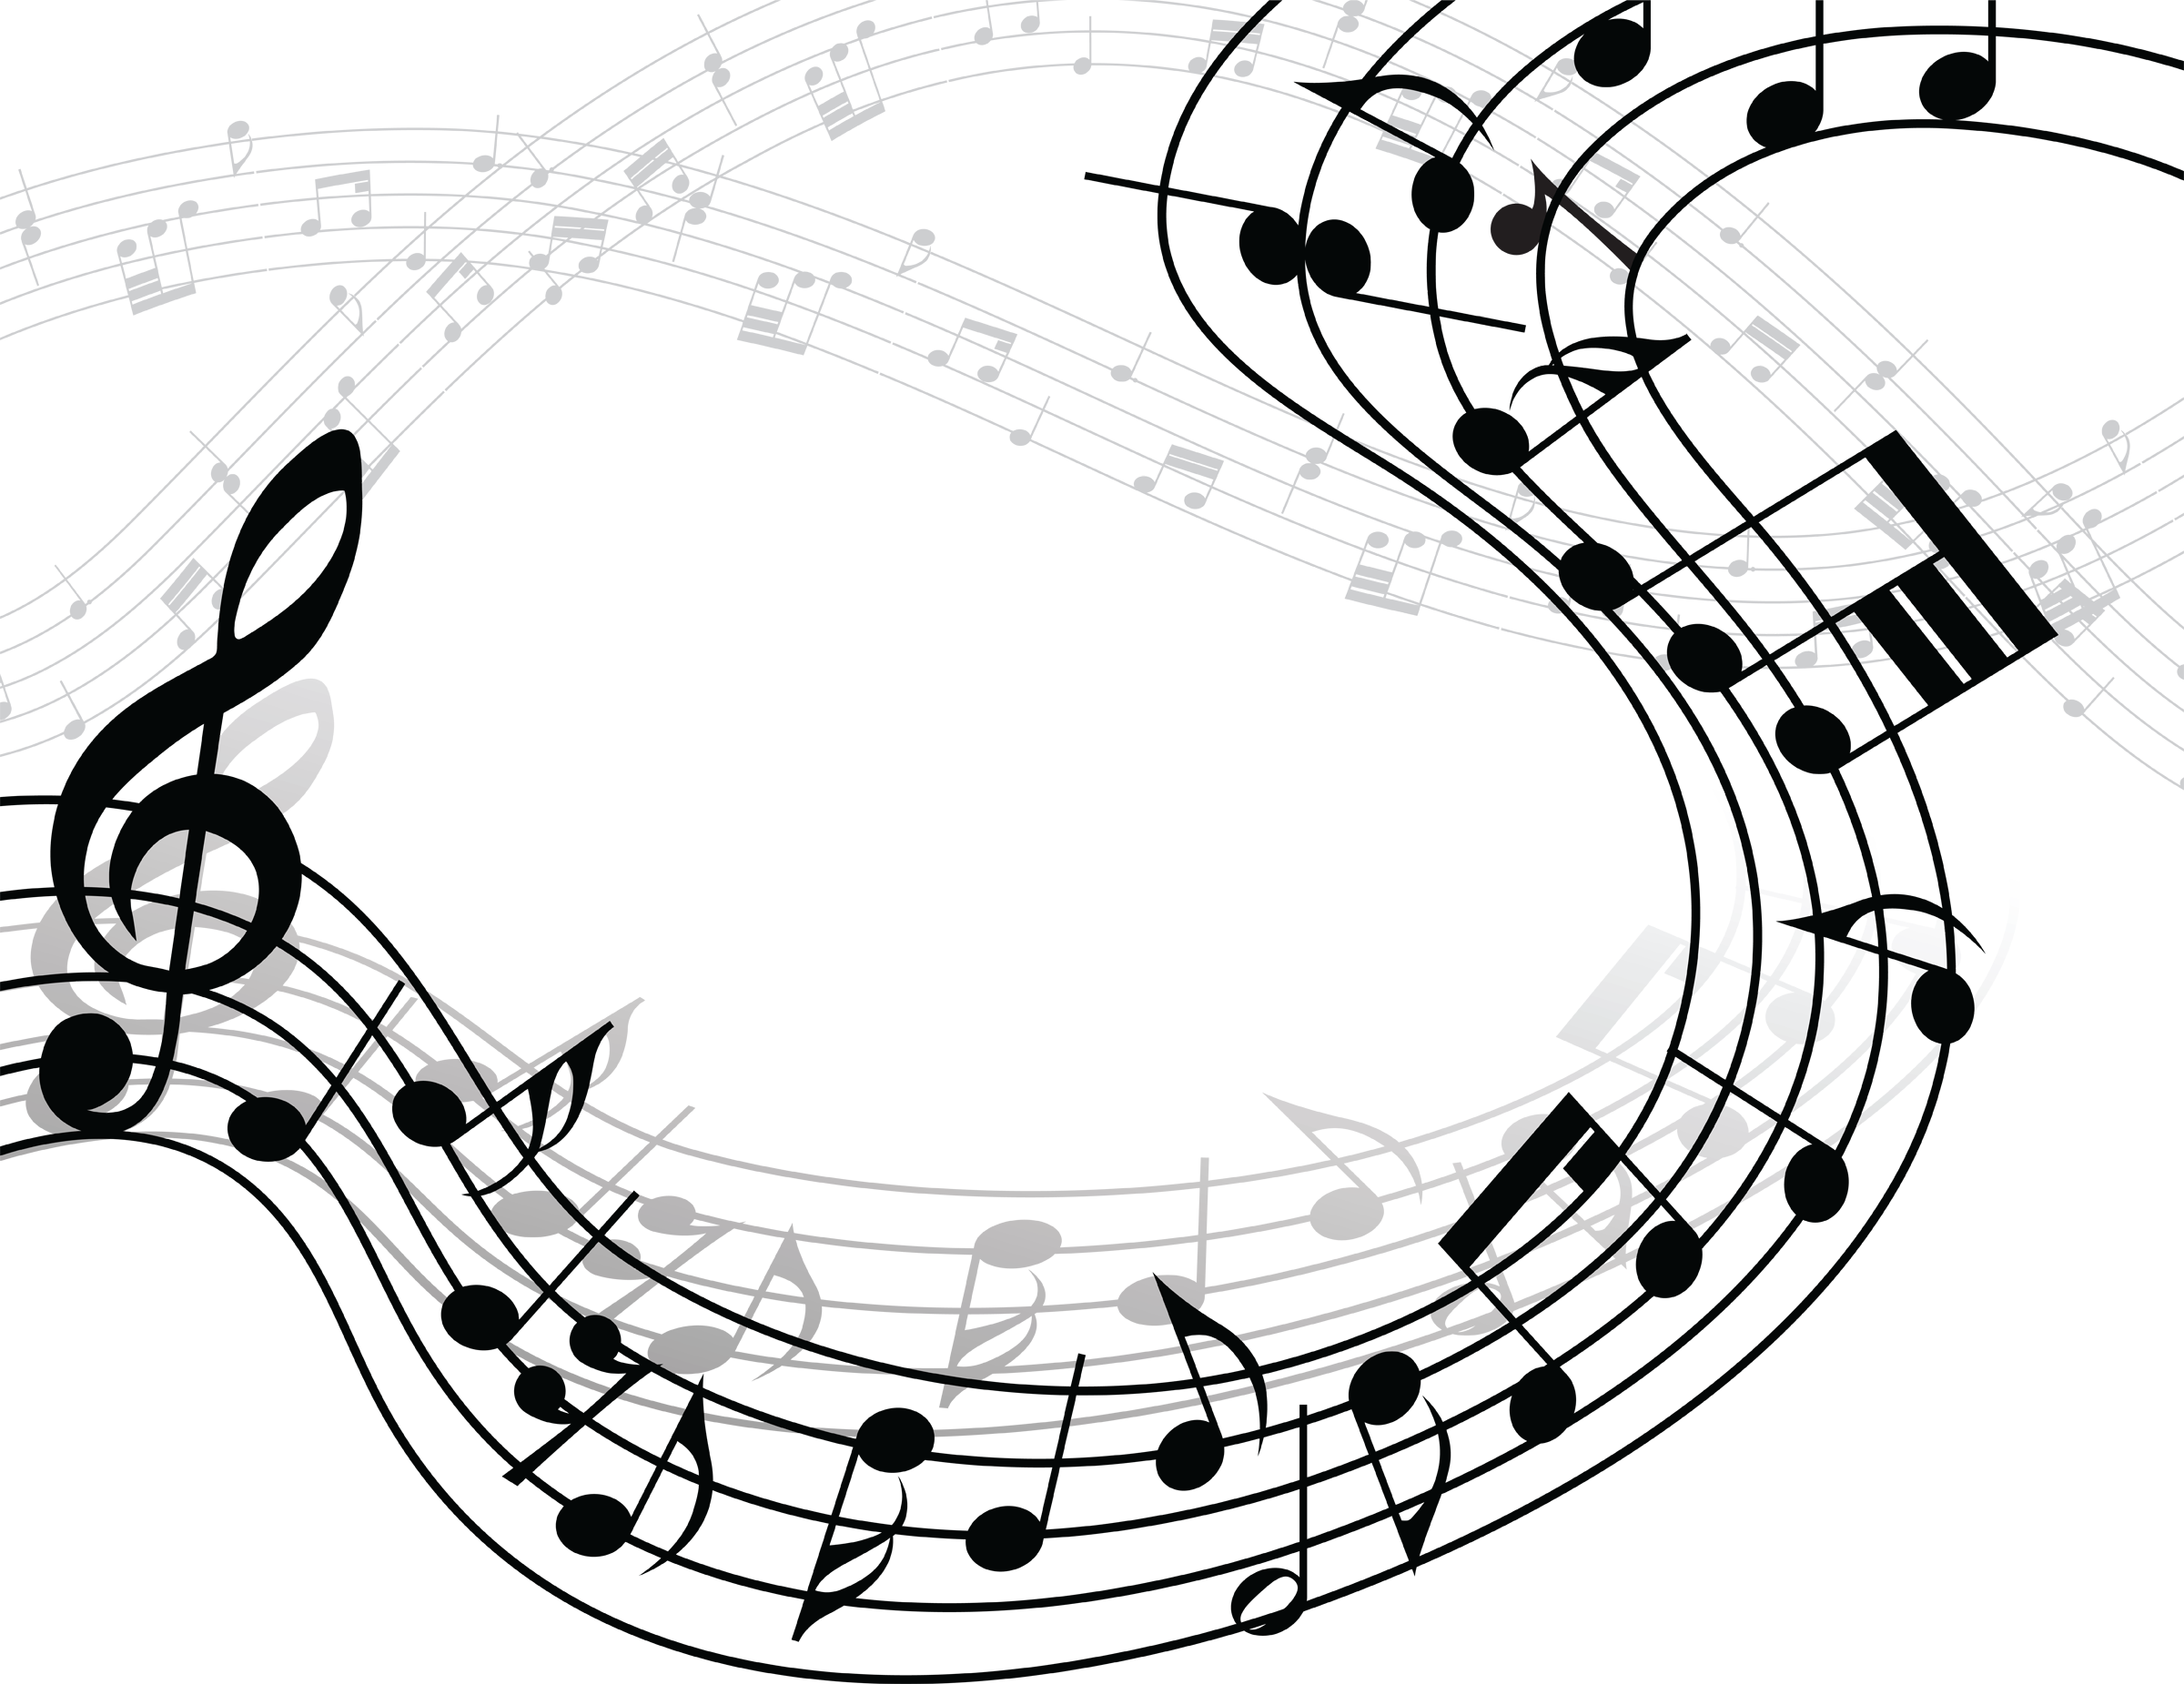 musical notes background clipart panda free clipart images